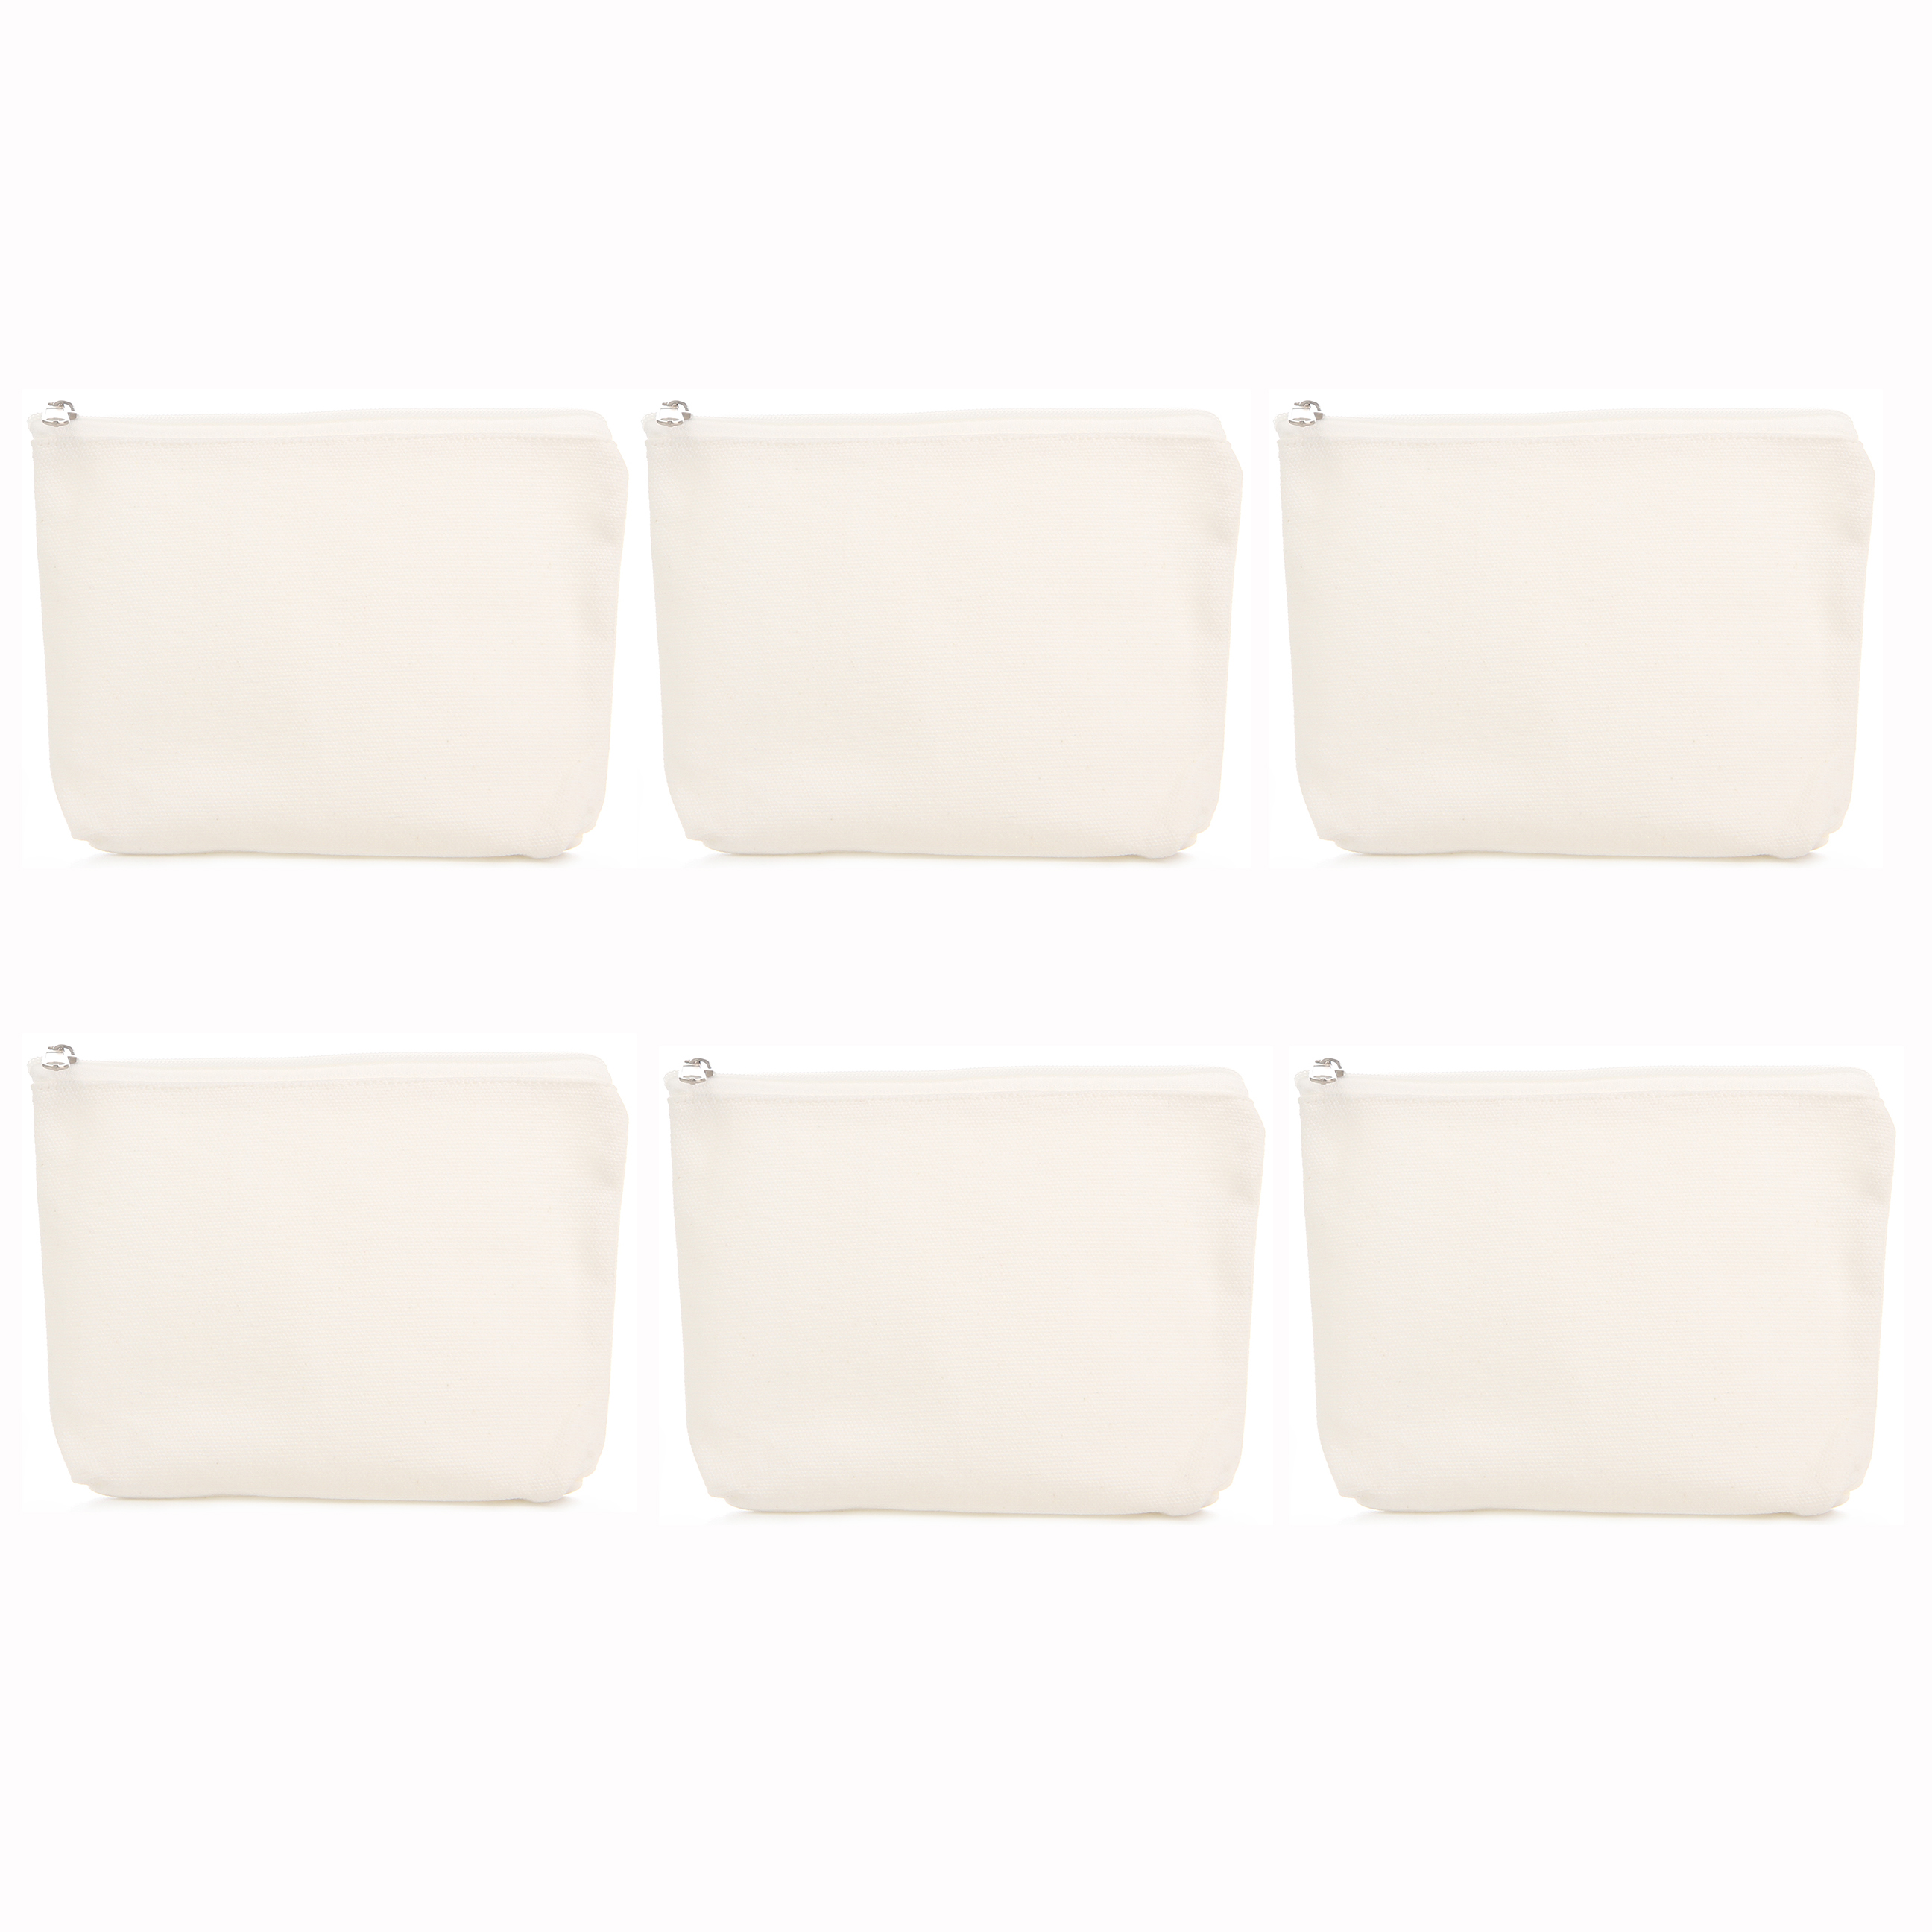 6Pcs/Lot Make-Up Bag DIY Cotton Pure White Zipper Case Canvas Simple Travel Cosmetic Bag